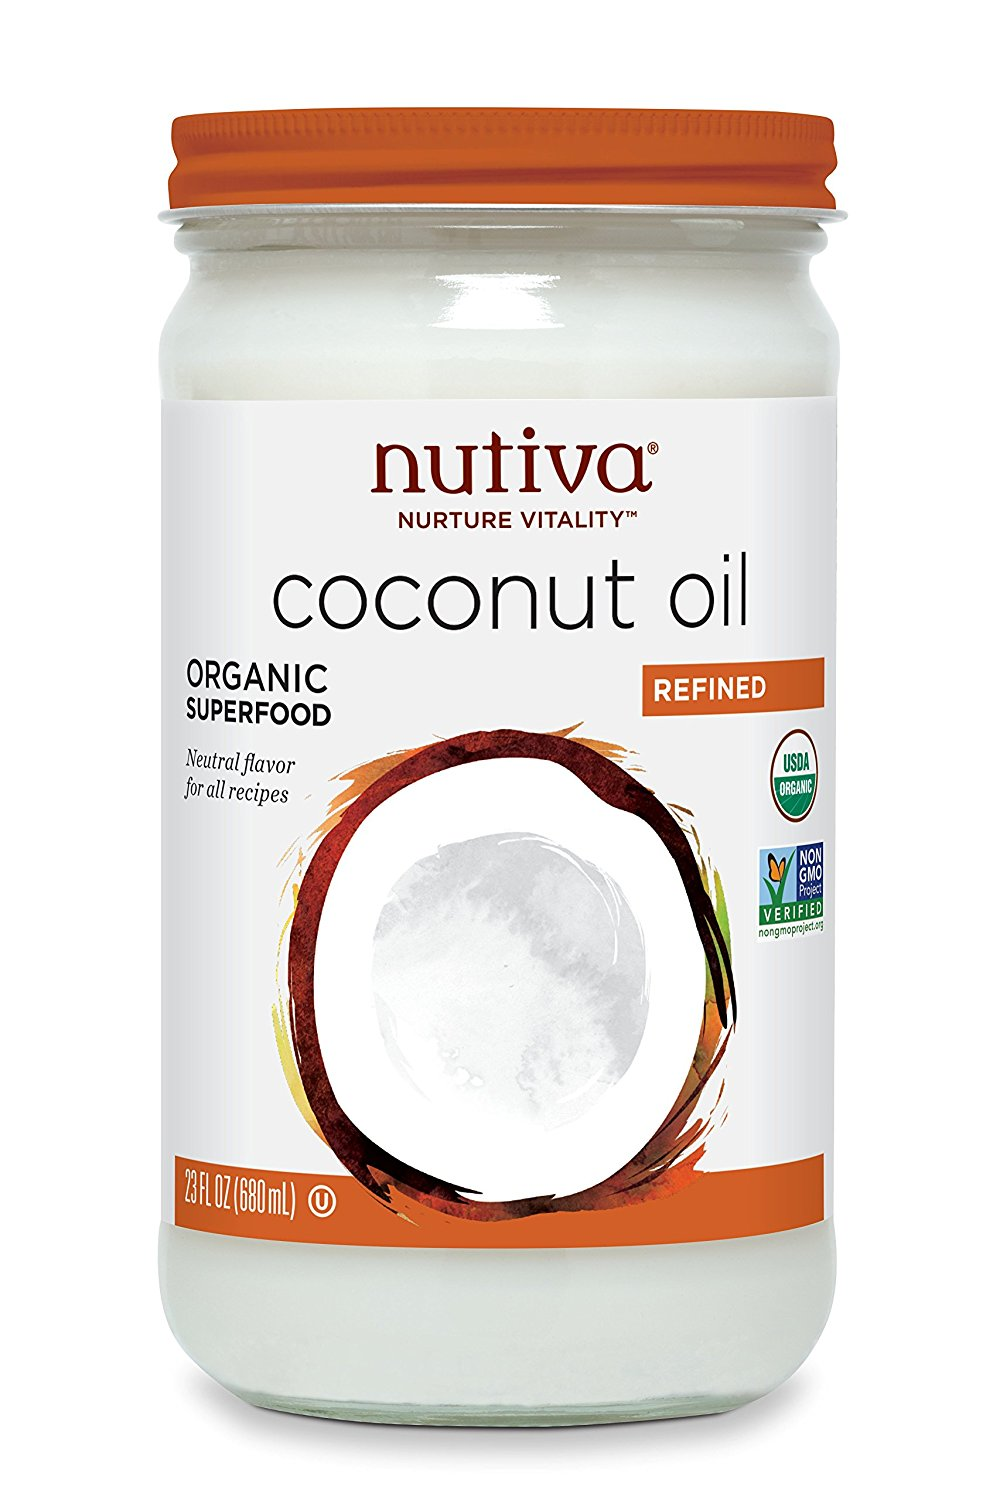 Nutiva Refined Coconut Oil - 23 OZ